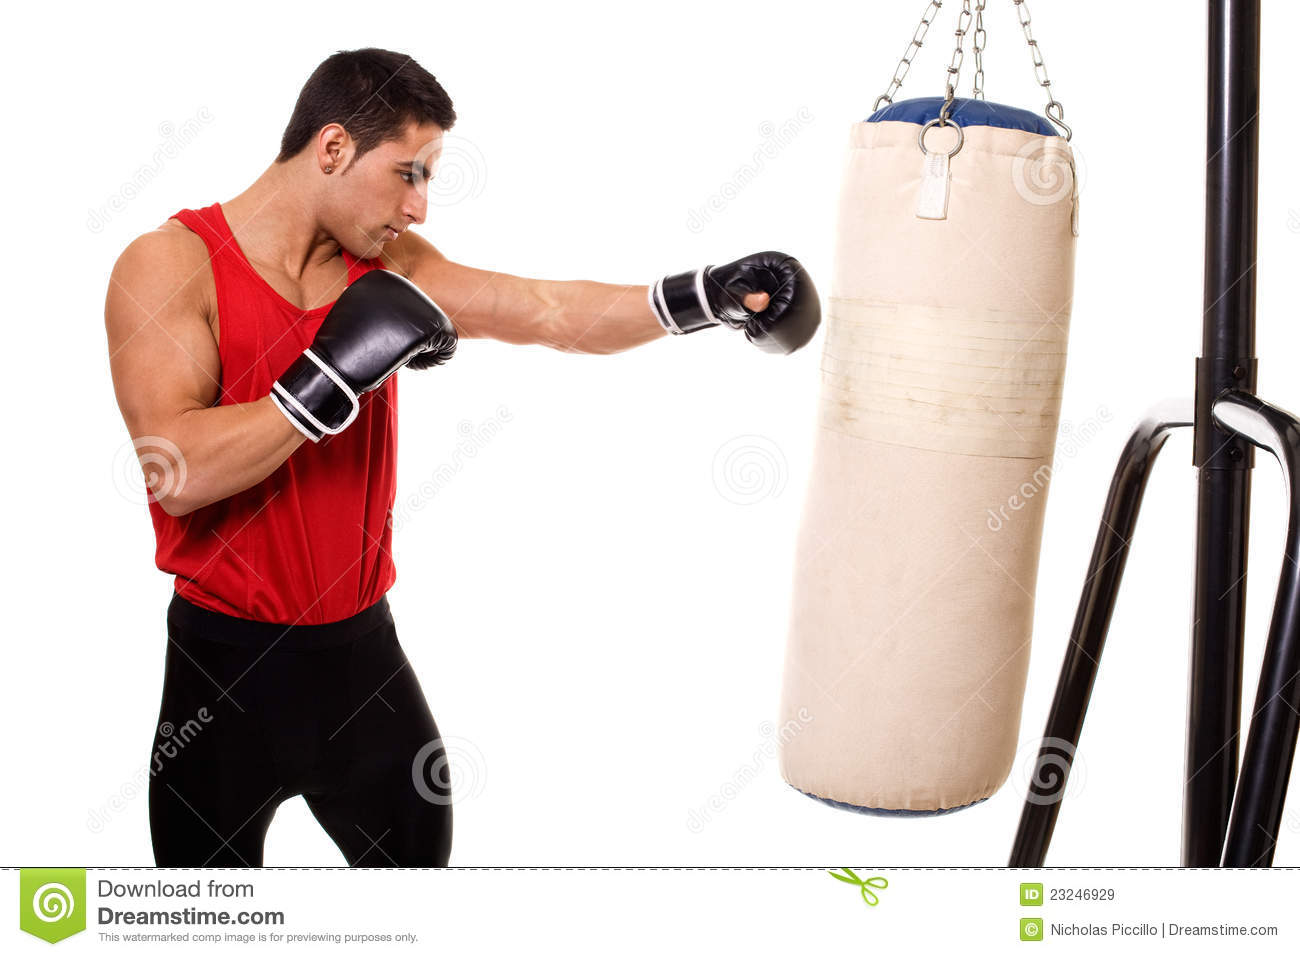 Heavy Bag Workout Royalty Free Stock Images - Image: 23246929